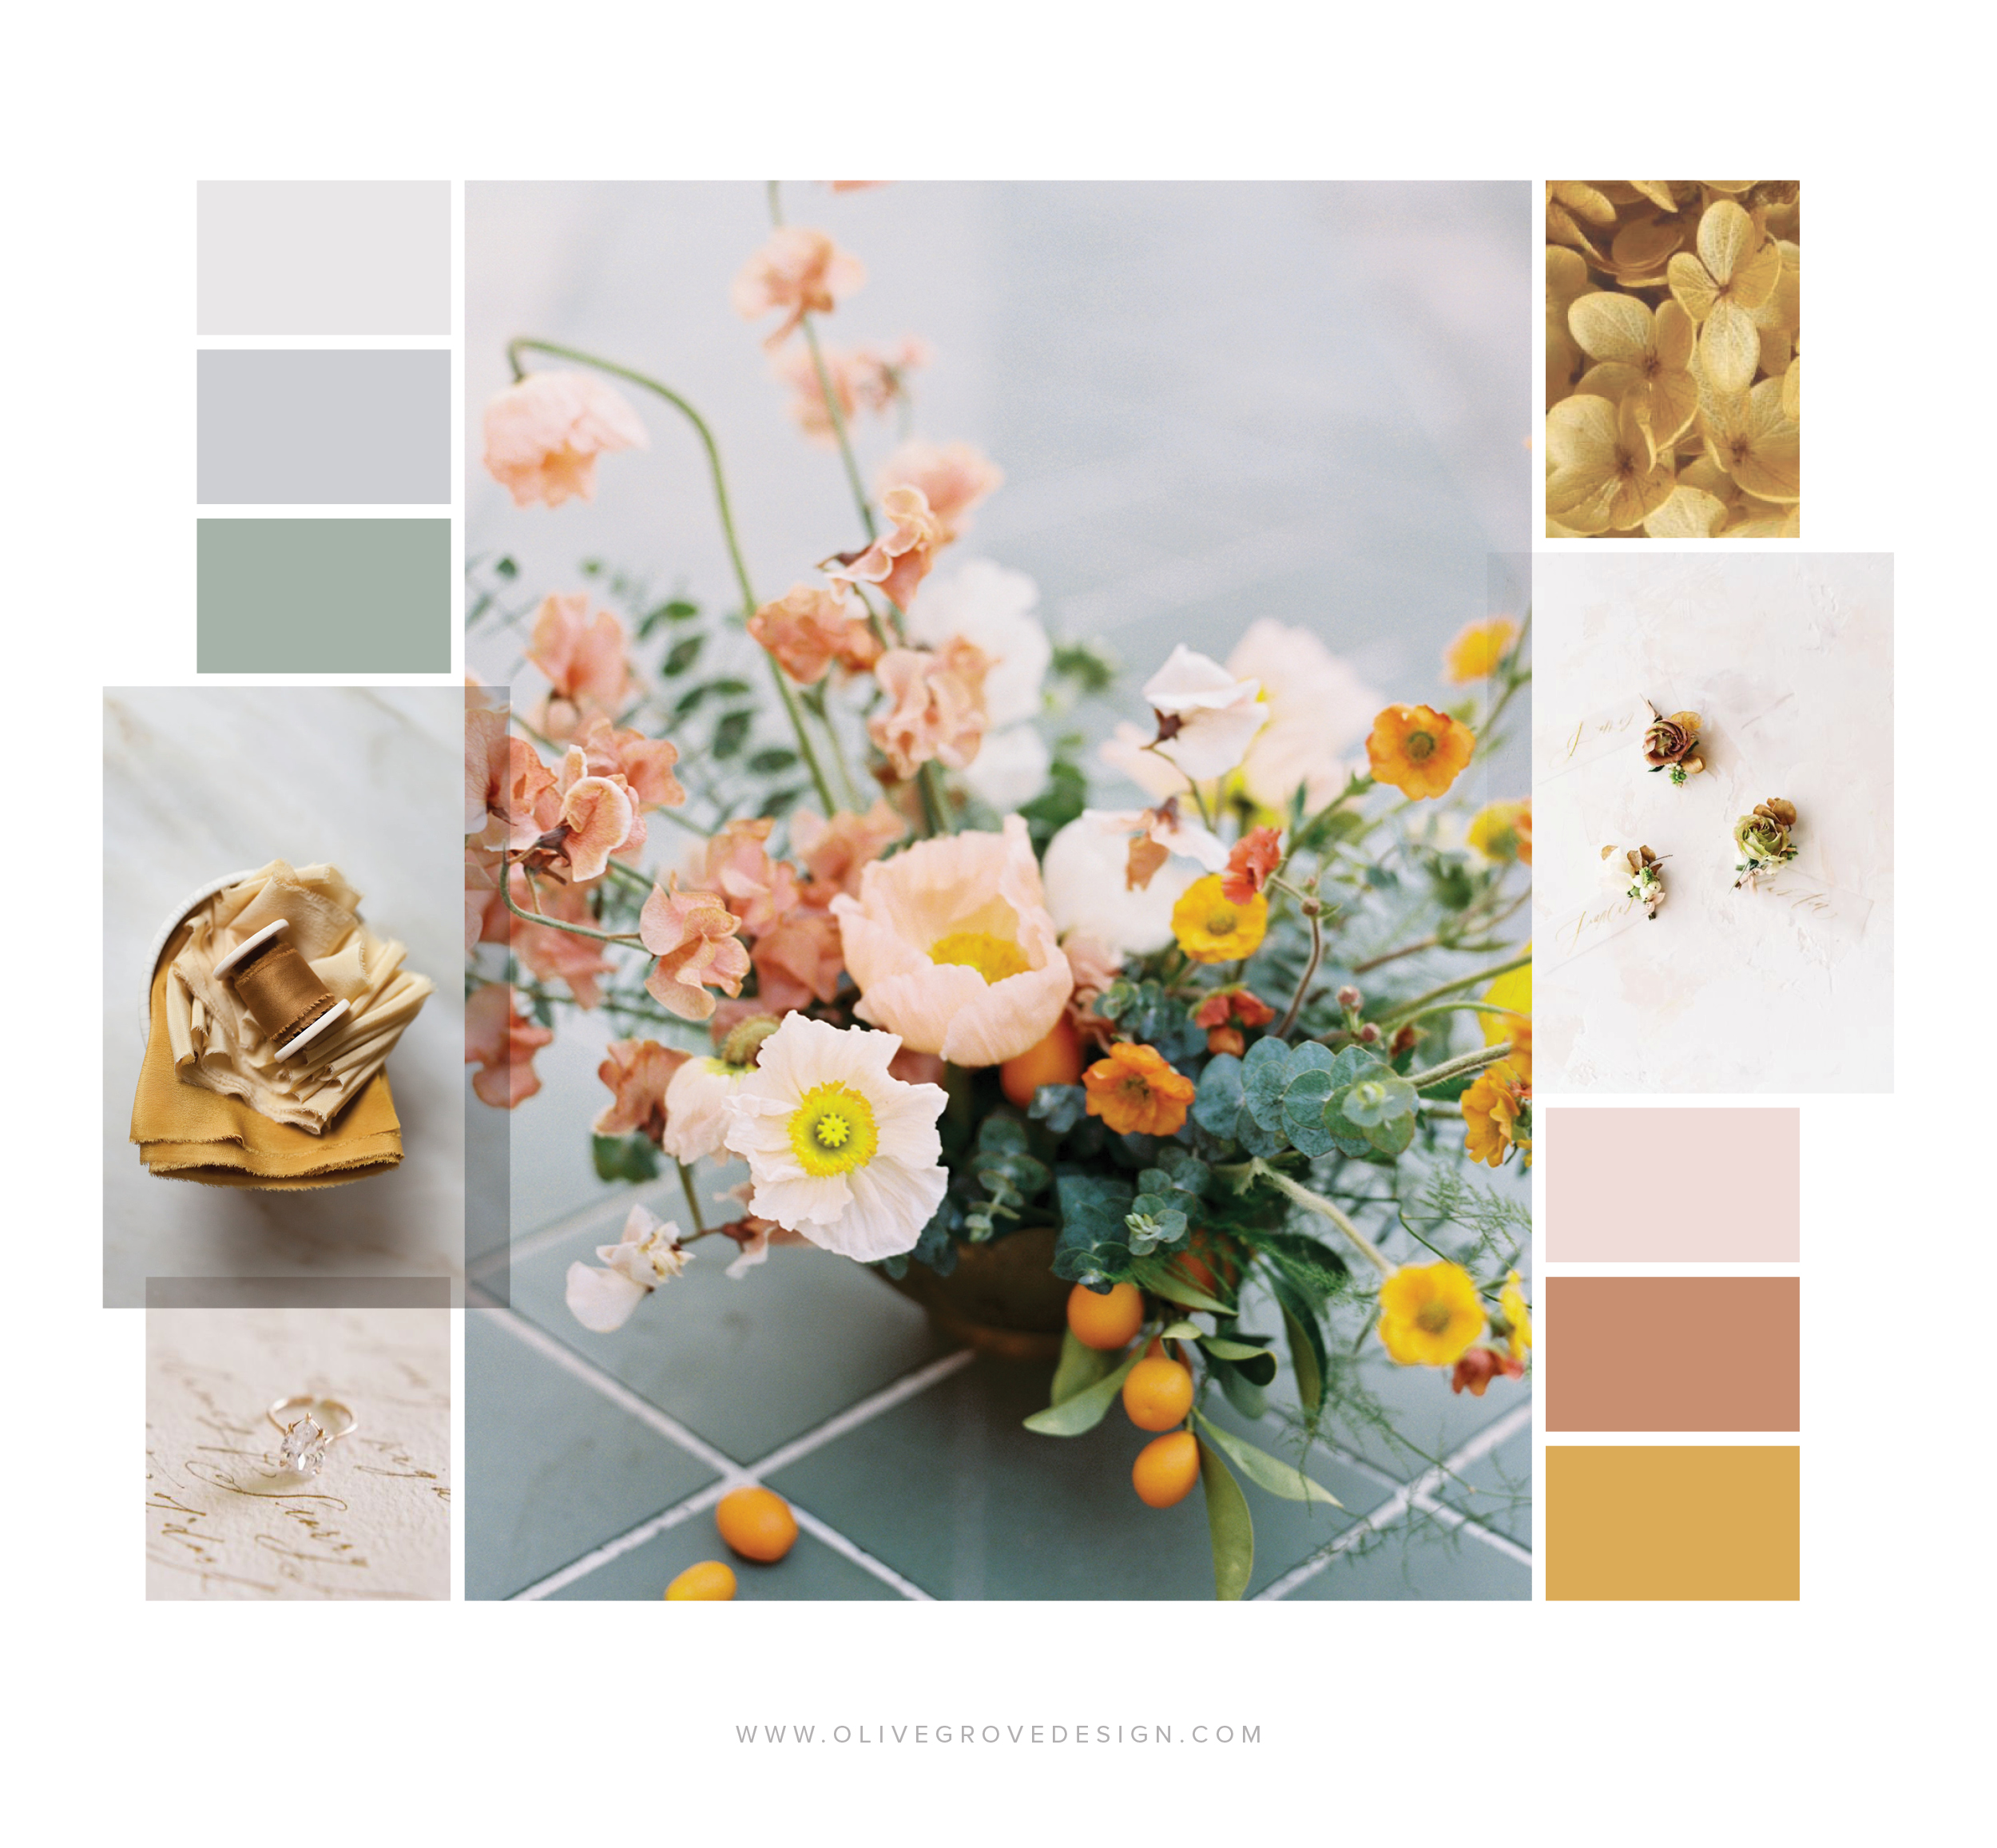 May_MoodboardMonday_Olive Grove Design.jpg